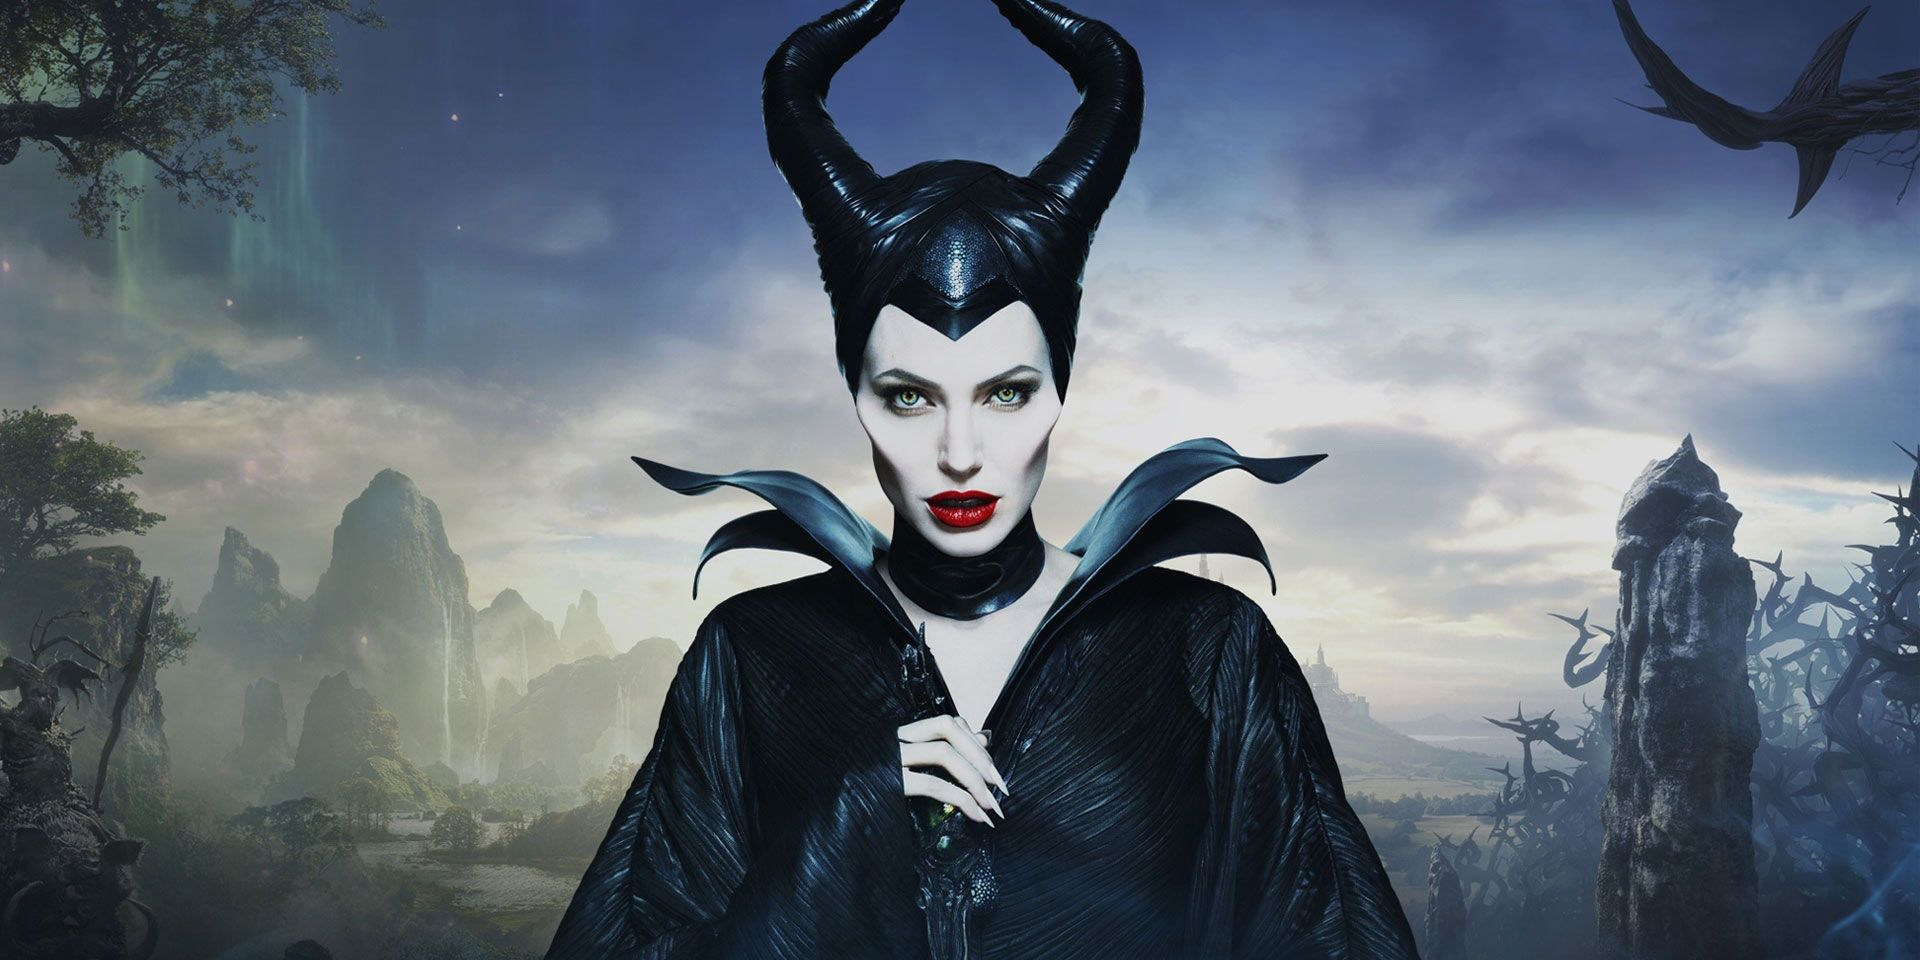 Disney's Maleficent Sequel Debuts New Title & 'Evil' Poster